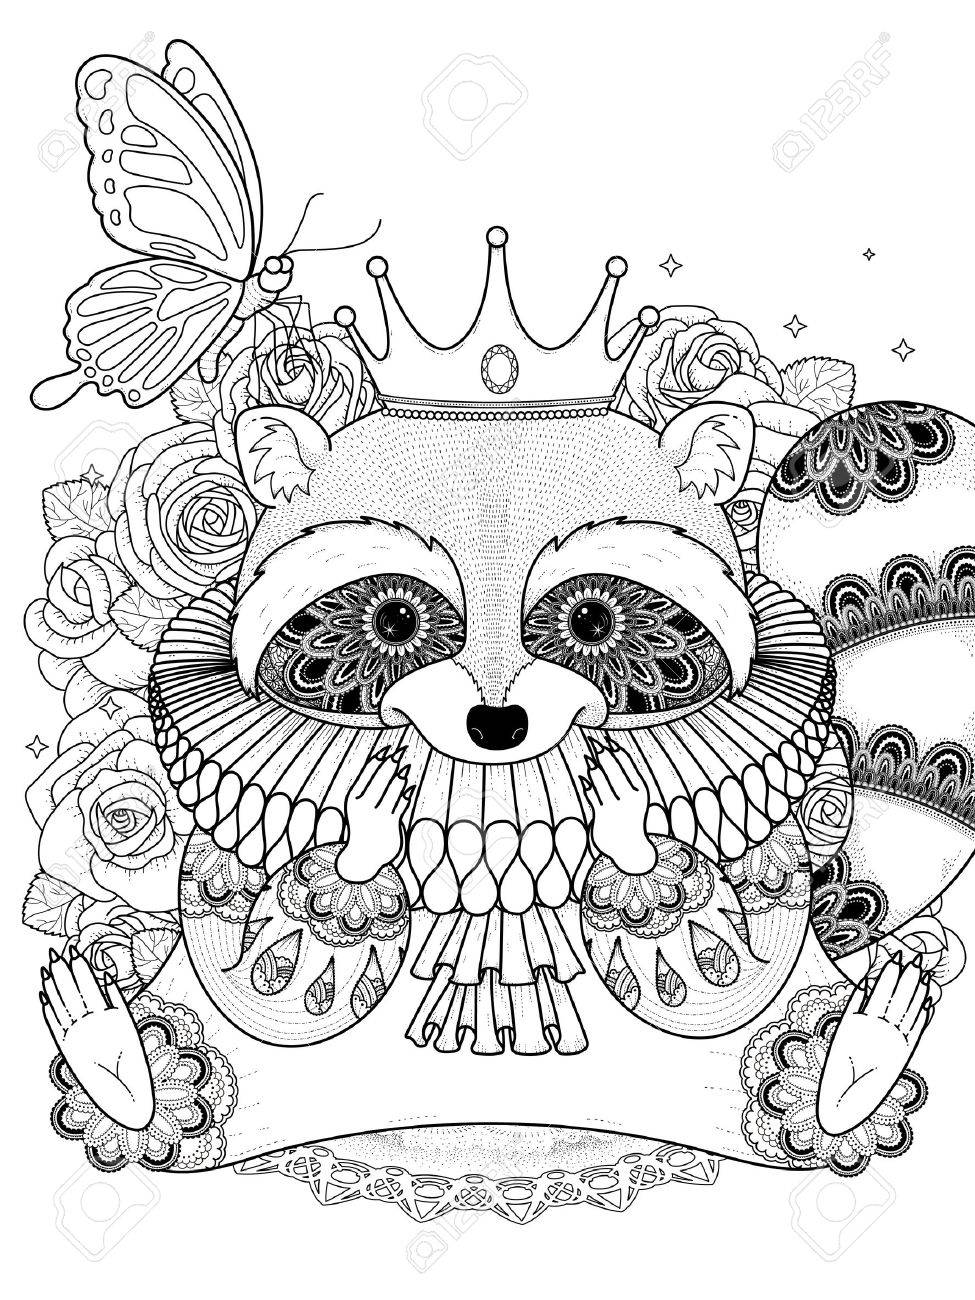 Adorable Raccoon In Gorgeous Clothes Adult Coloring Page Royalty Free Cliparts Vectors And Stock Illustration Image 56869436